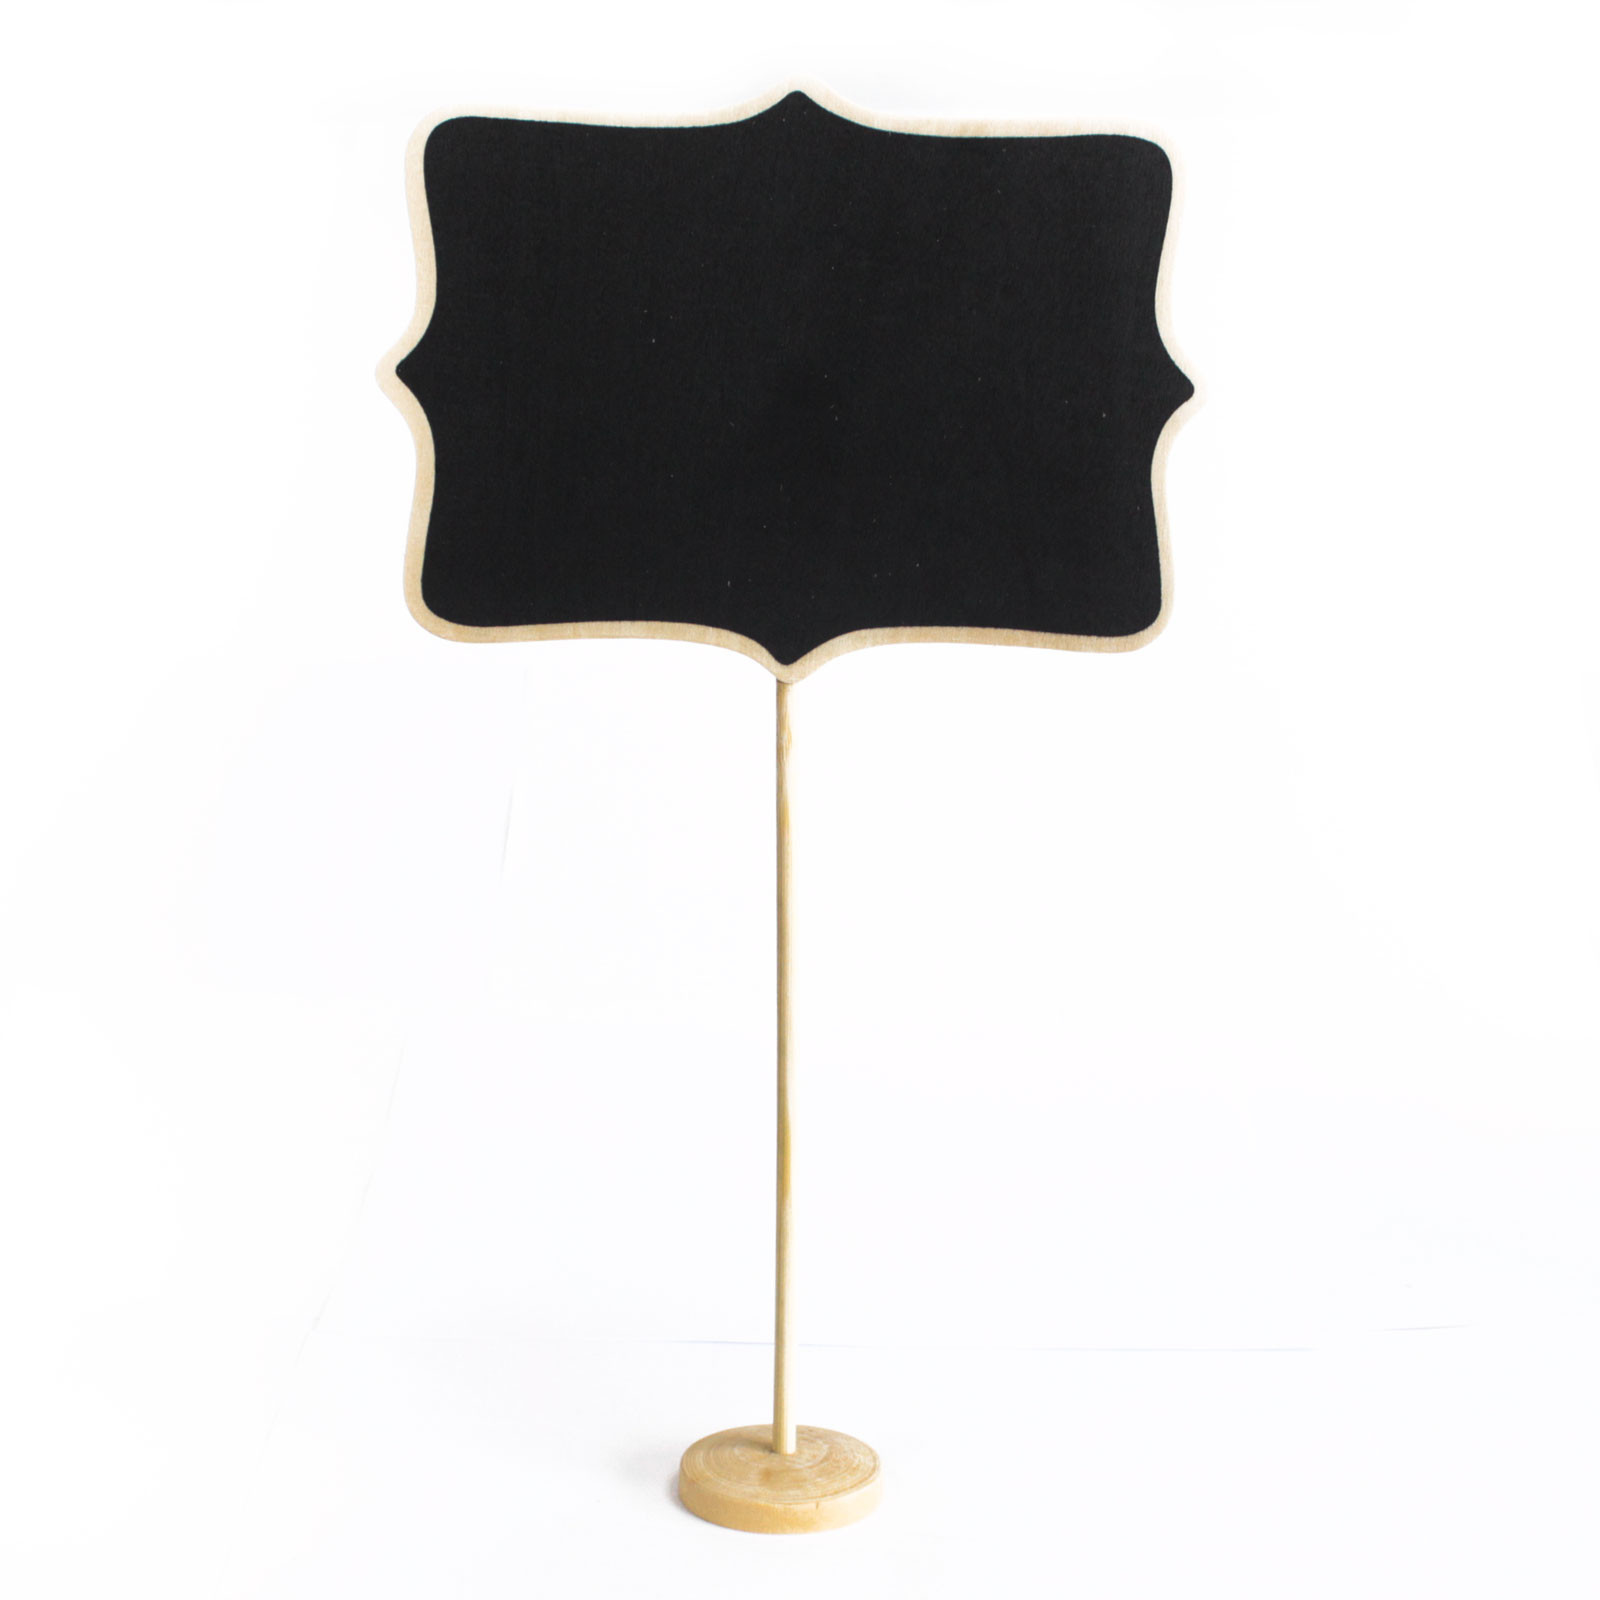 Large Blackboard Sign on Stand